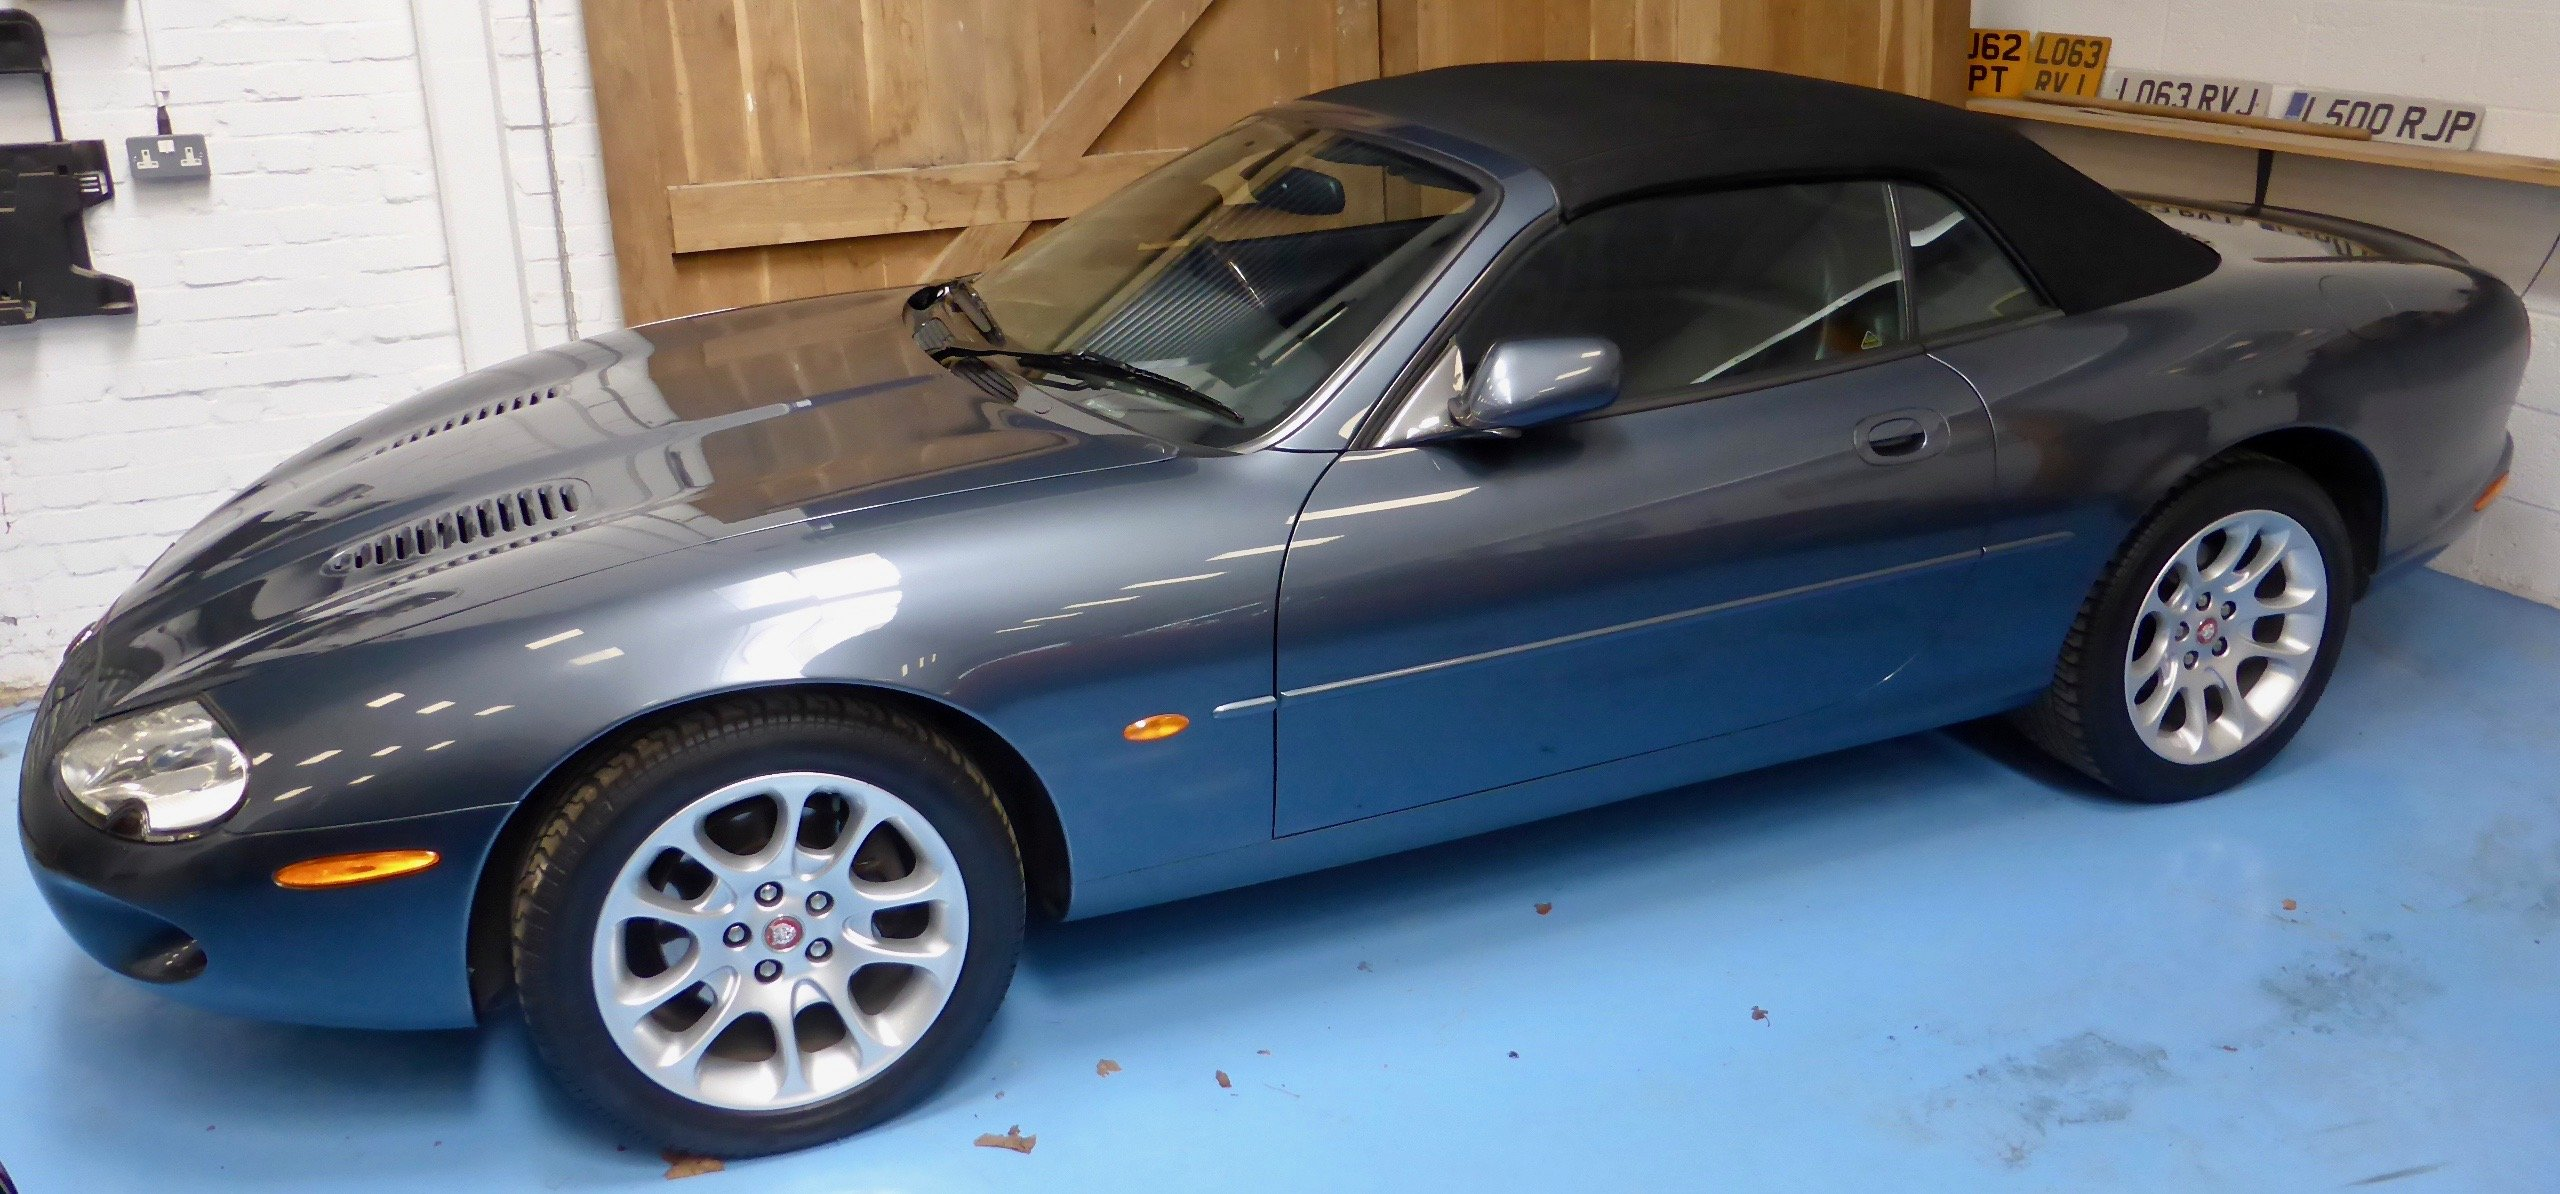 1999 Jaguar XKR 2dr Auto Sports Convertible SOLD (picture 1 of 5)